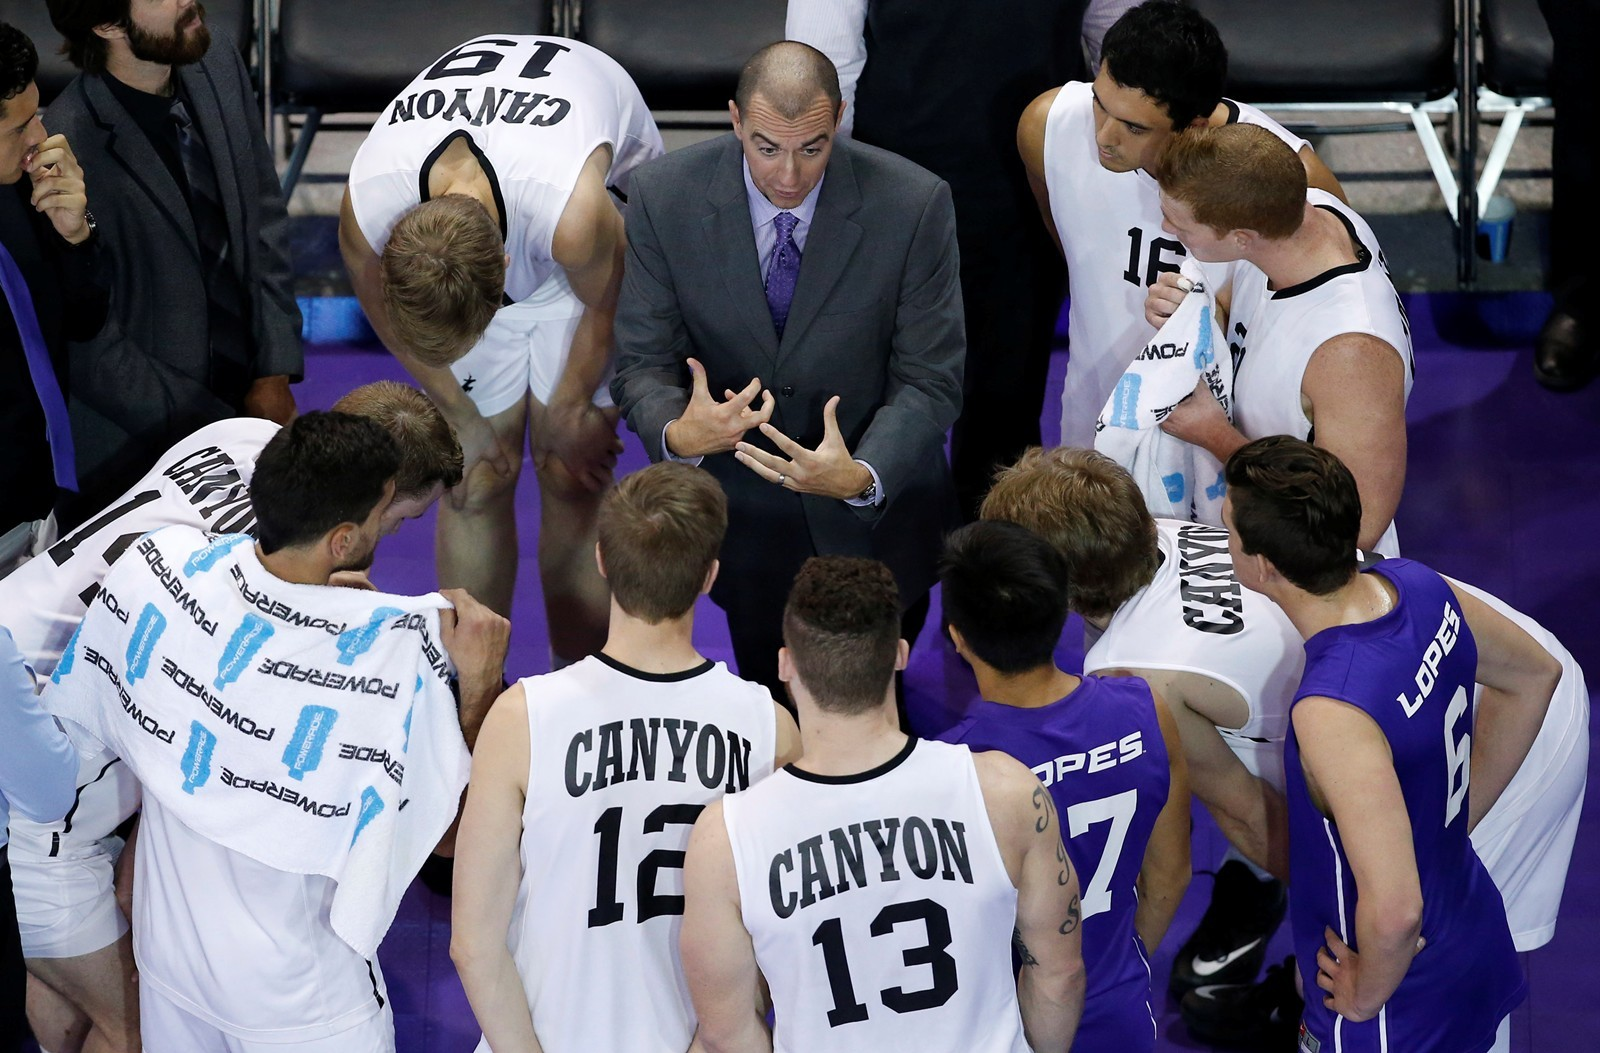 Lopes Take No. 7 USC To The Wire Before Falling 3-2 | Grand Canyon ...